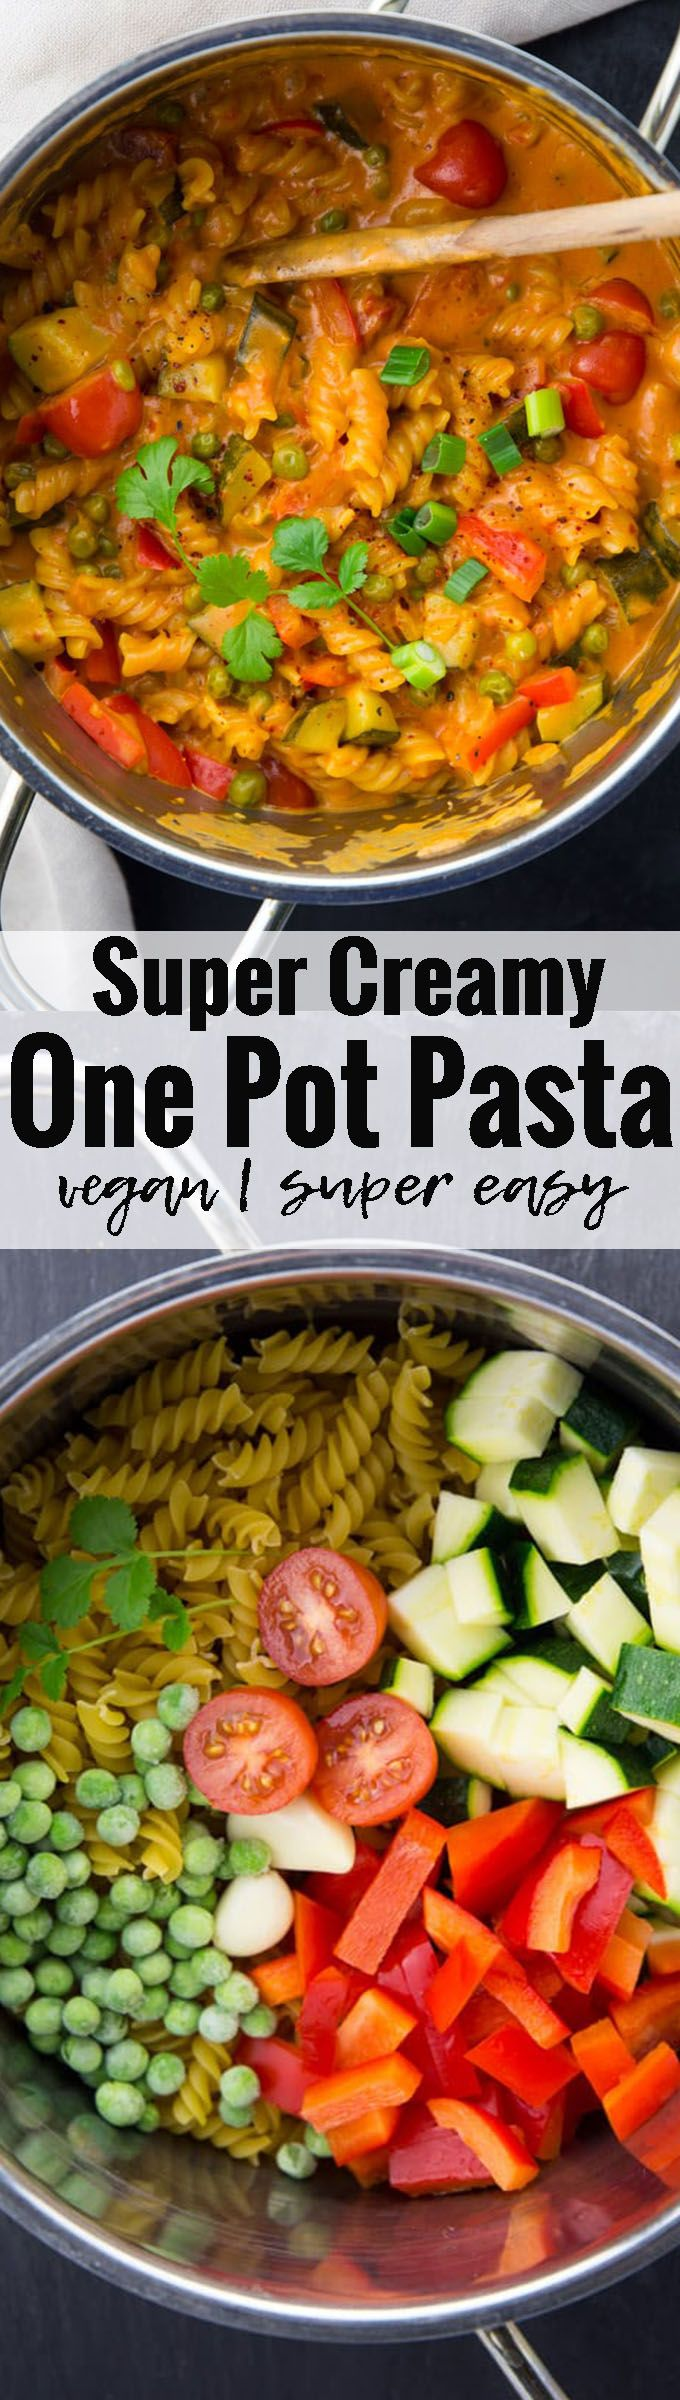 This one pot pasta is one of my all-time vegan pasta recipes! It SO easy, healthy, and so incredibly delicious and creamy. The sauce is made of coconut milk and red curry paste, so it's kind of a an Asian style one pot pasta! <3 Find more vegan recipes at veganheaven.org